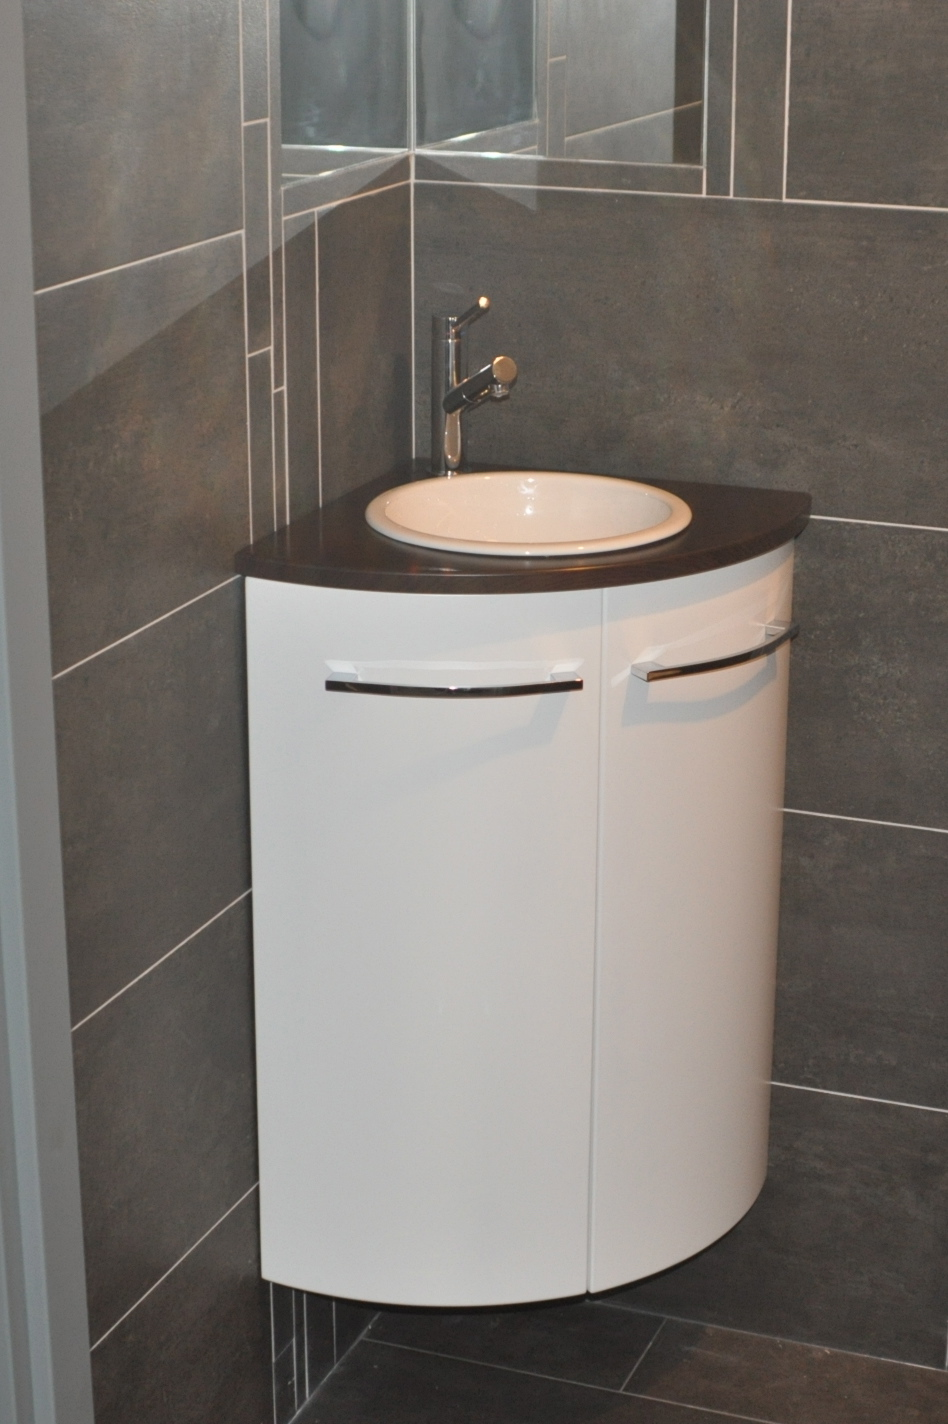 Lave main leroy merlin meuble maison design for Meuble lave main d angle wc